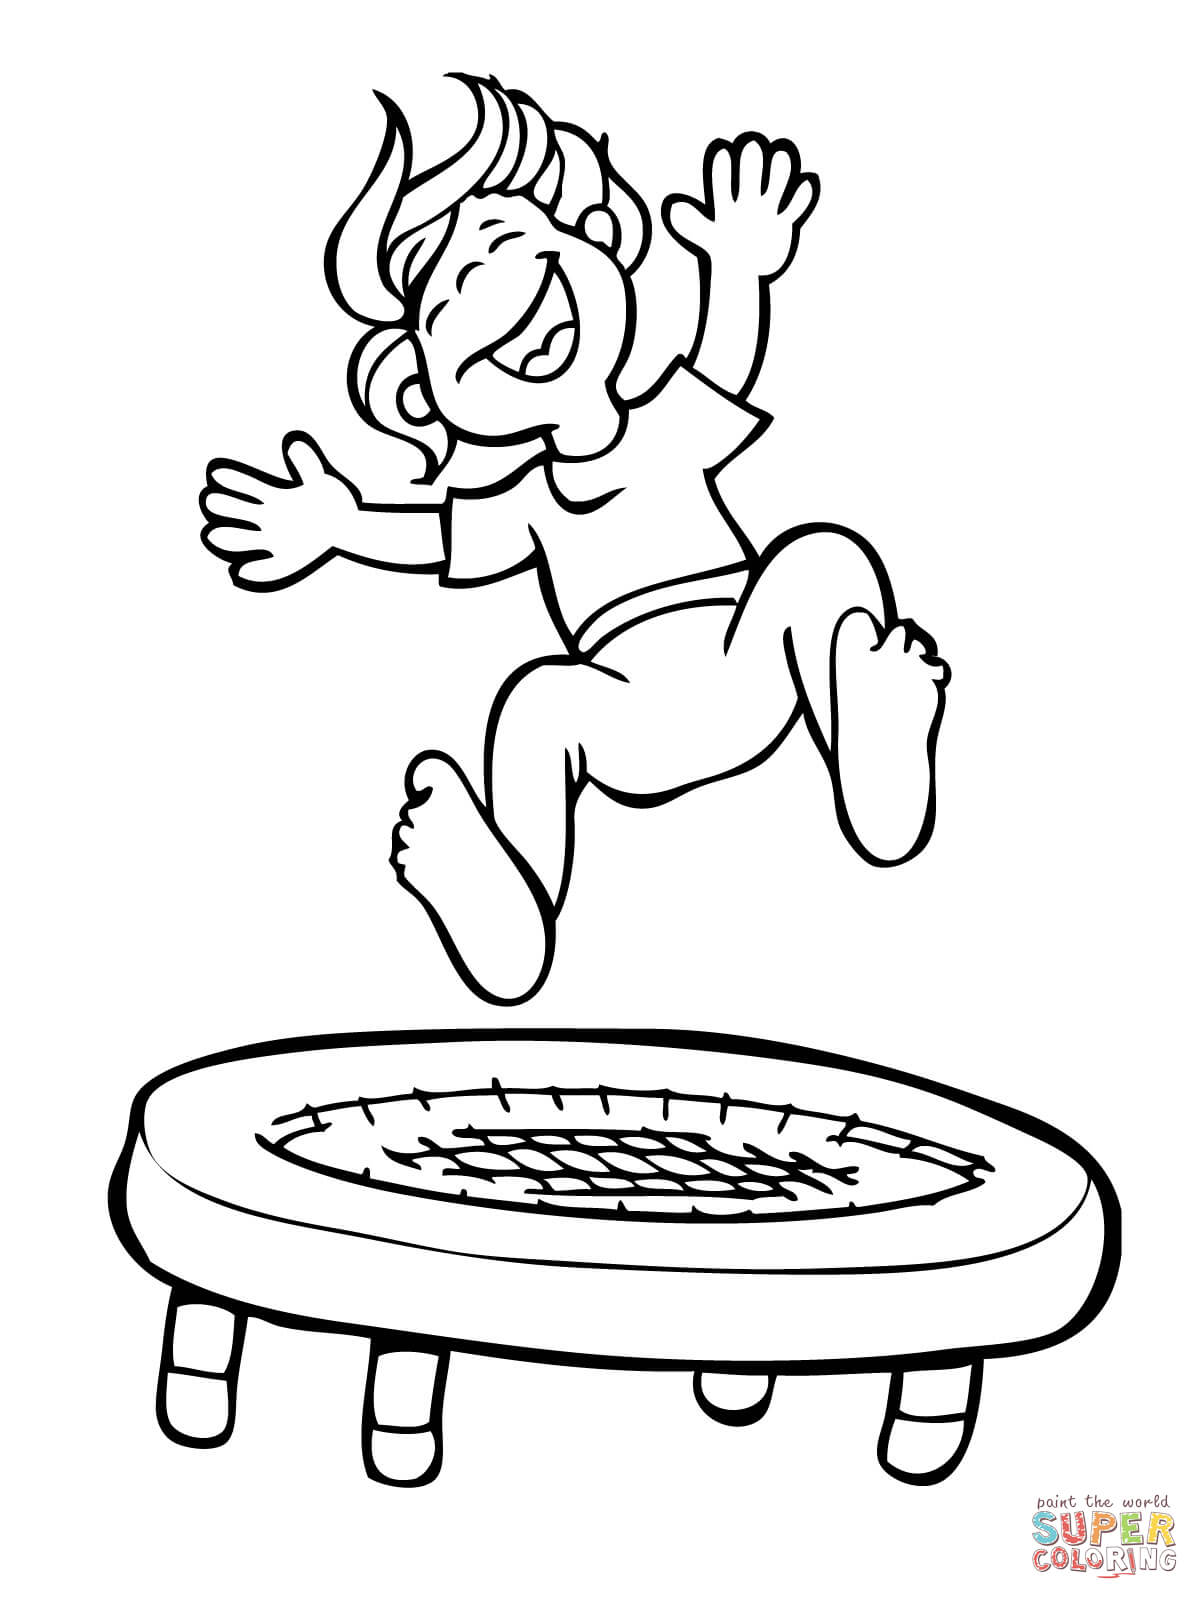 Kid Jumping on the Trampoline coloring page.